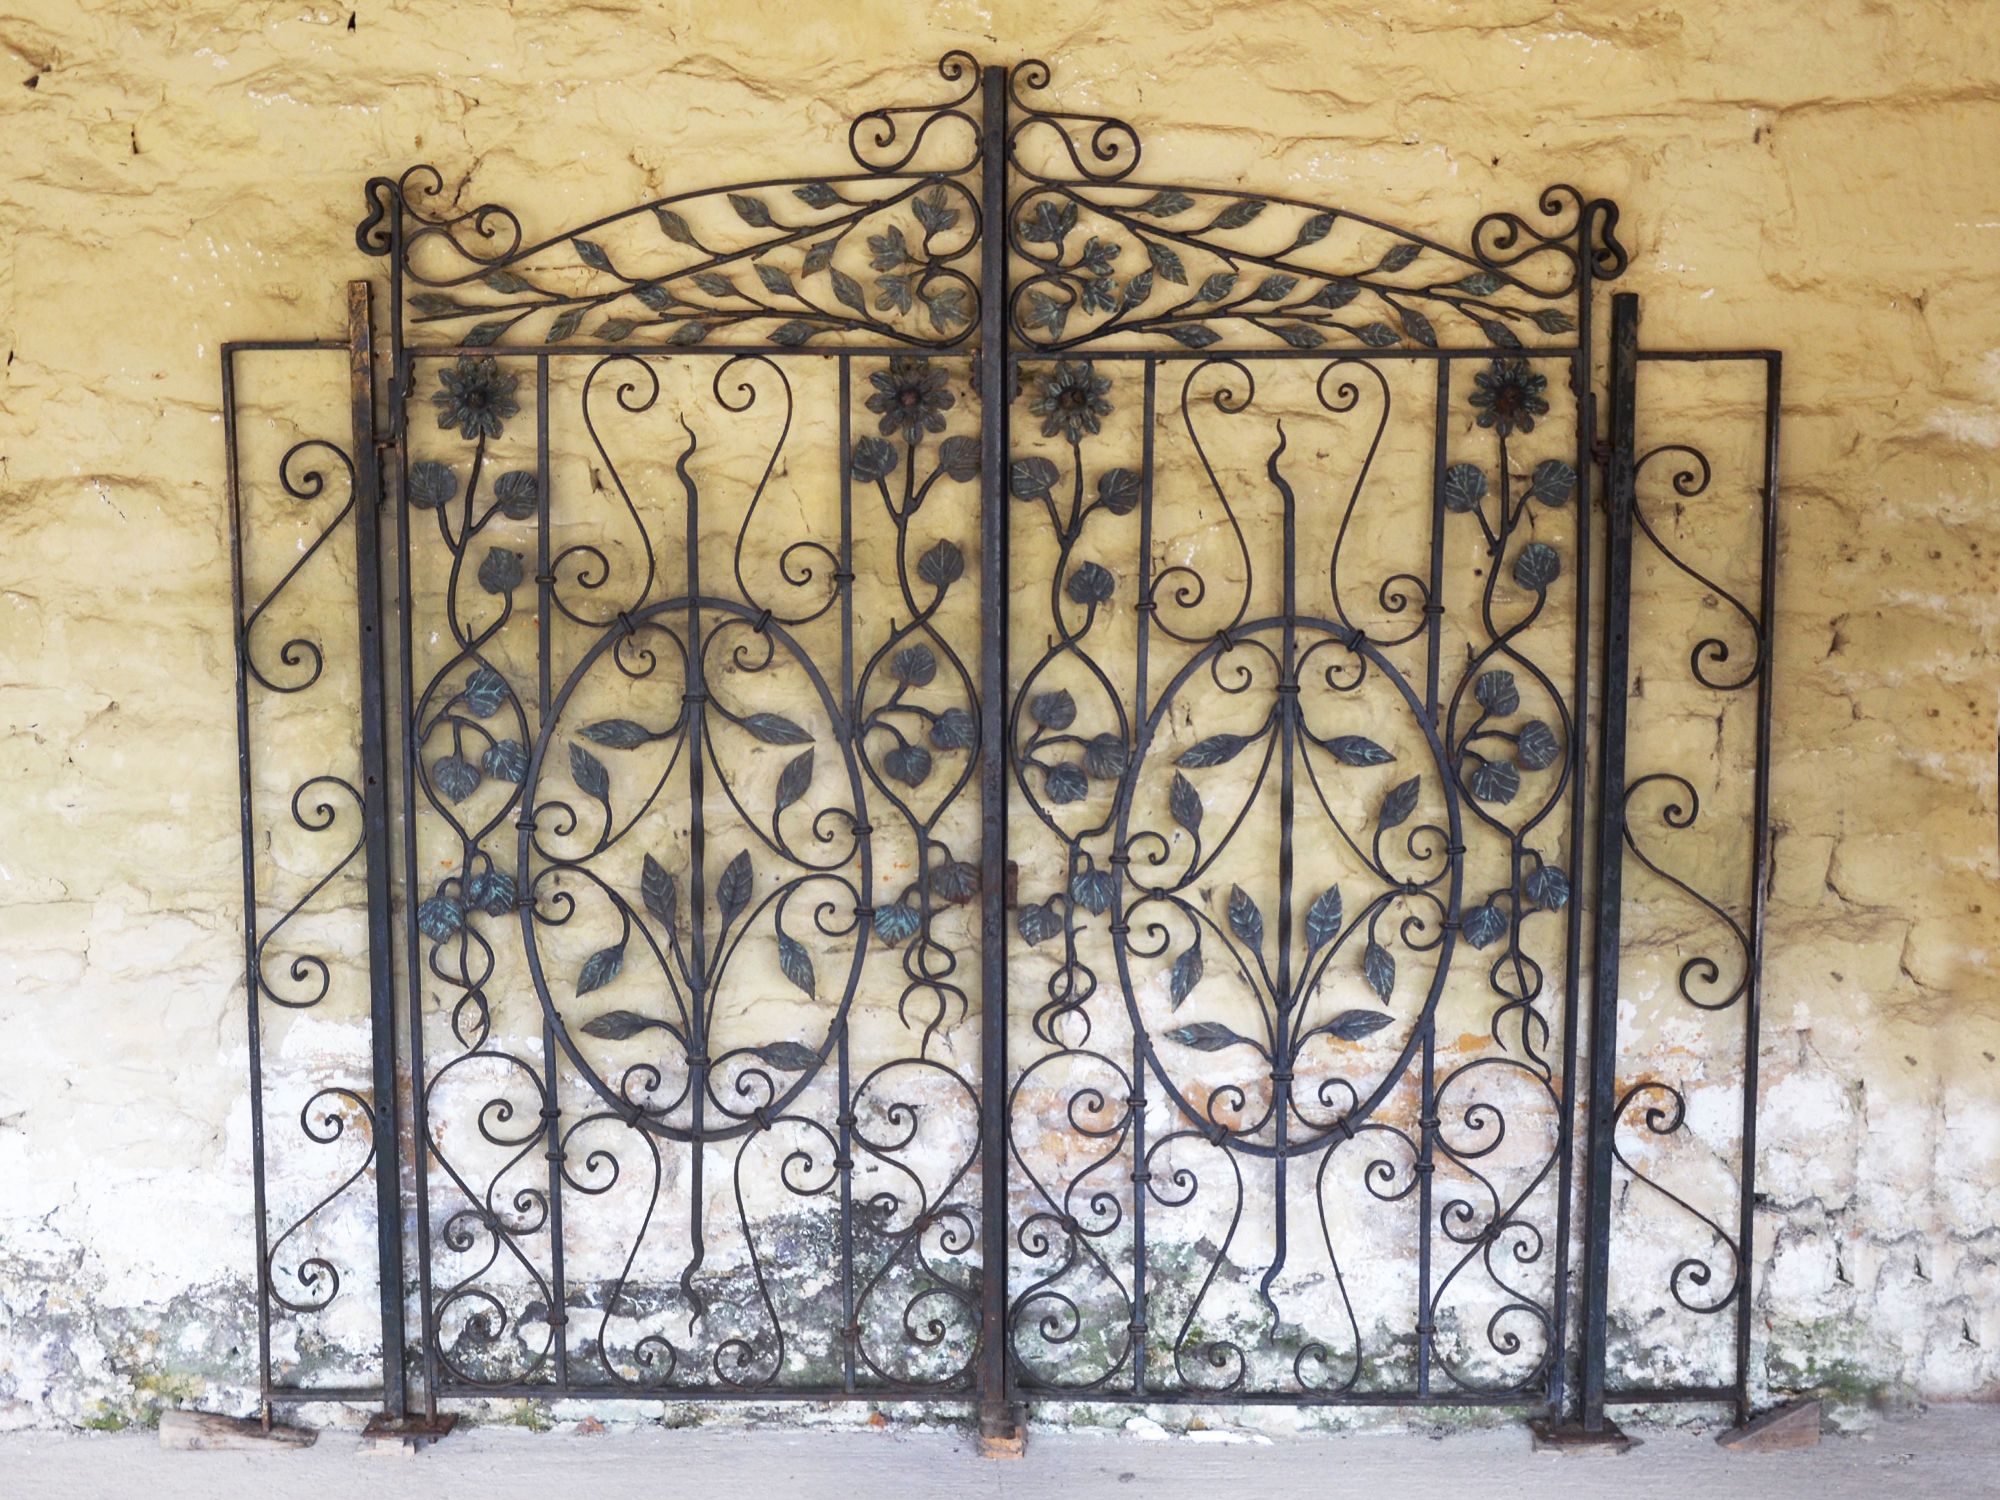 A pair of decorative wrought iron gates having leaf and flower motif throughout